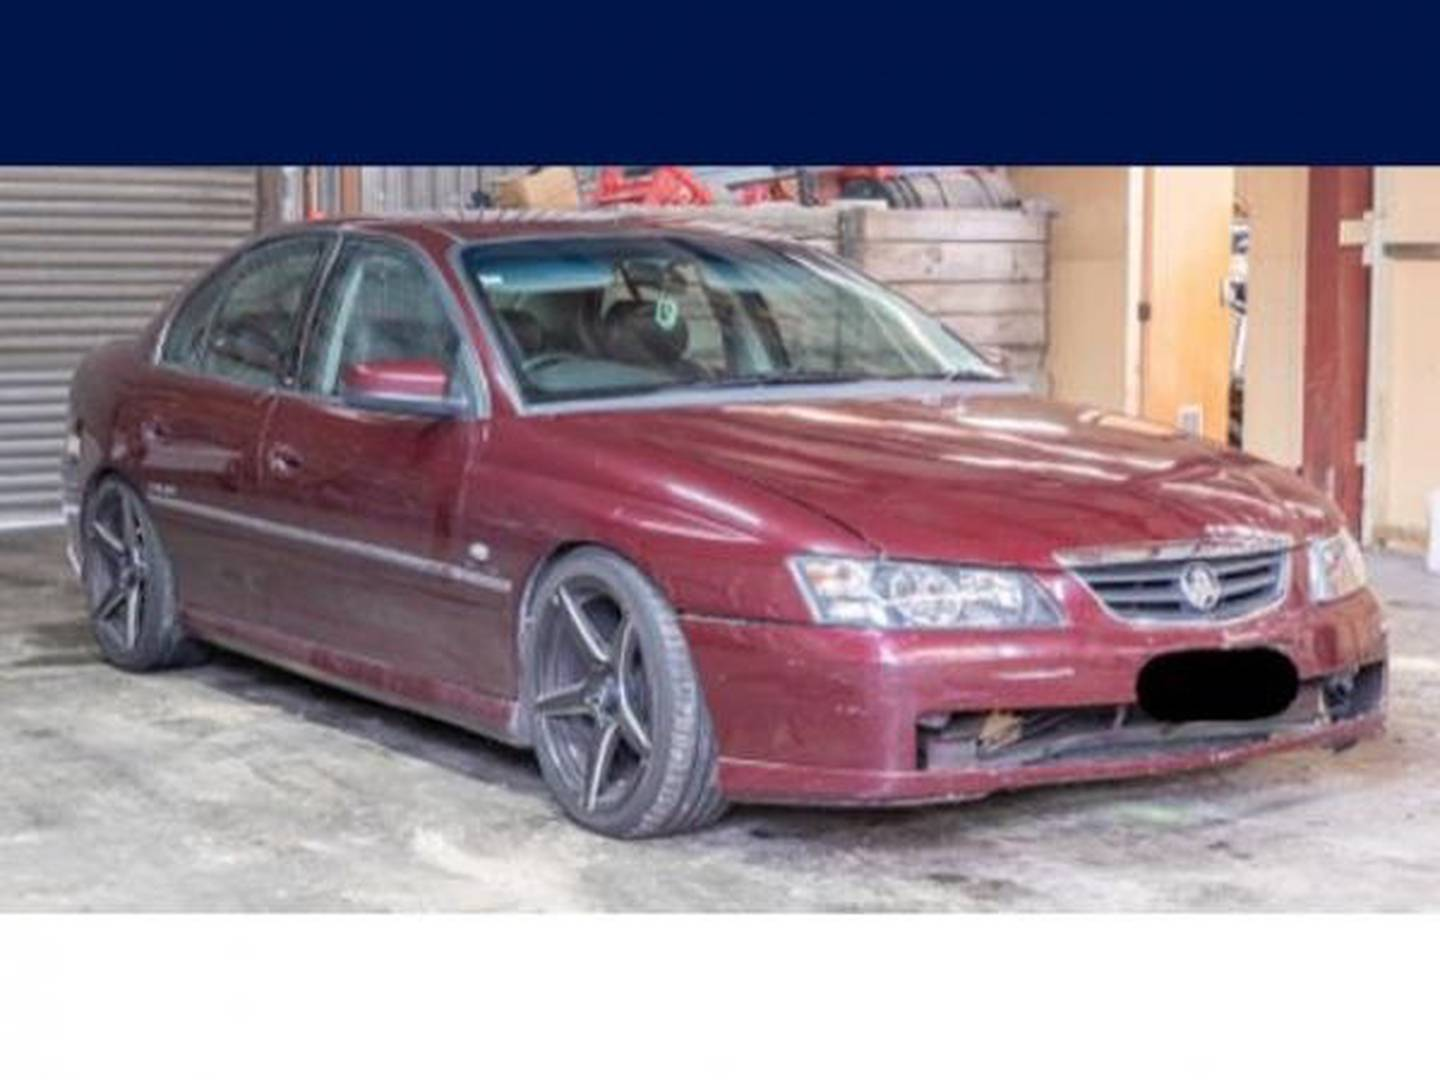 Police want to hear from anyone who saw the pictured maroon coloured Holden Commodore in the days before the incident on Monday. Photo / Supplied